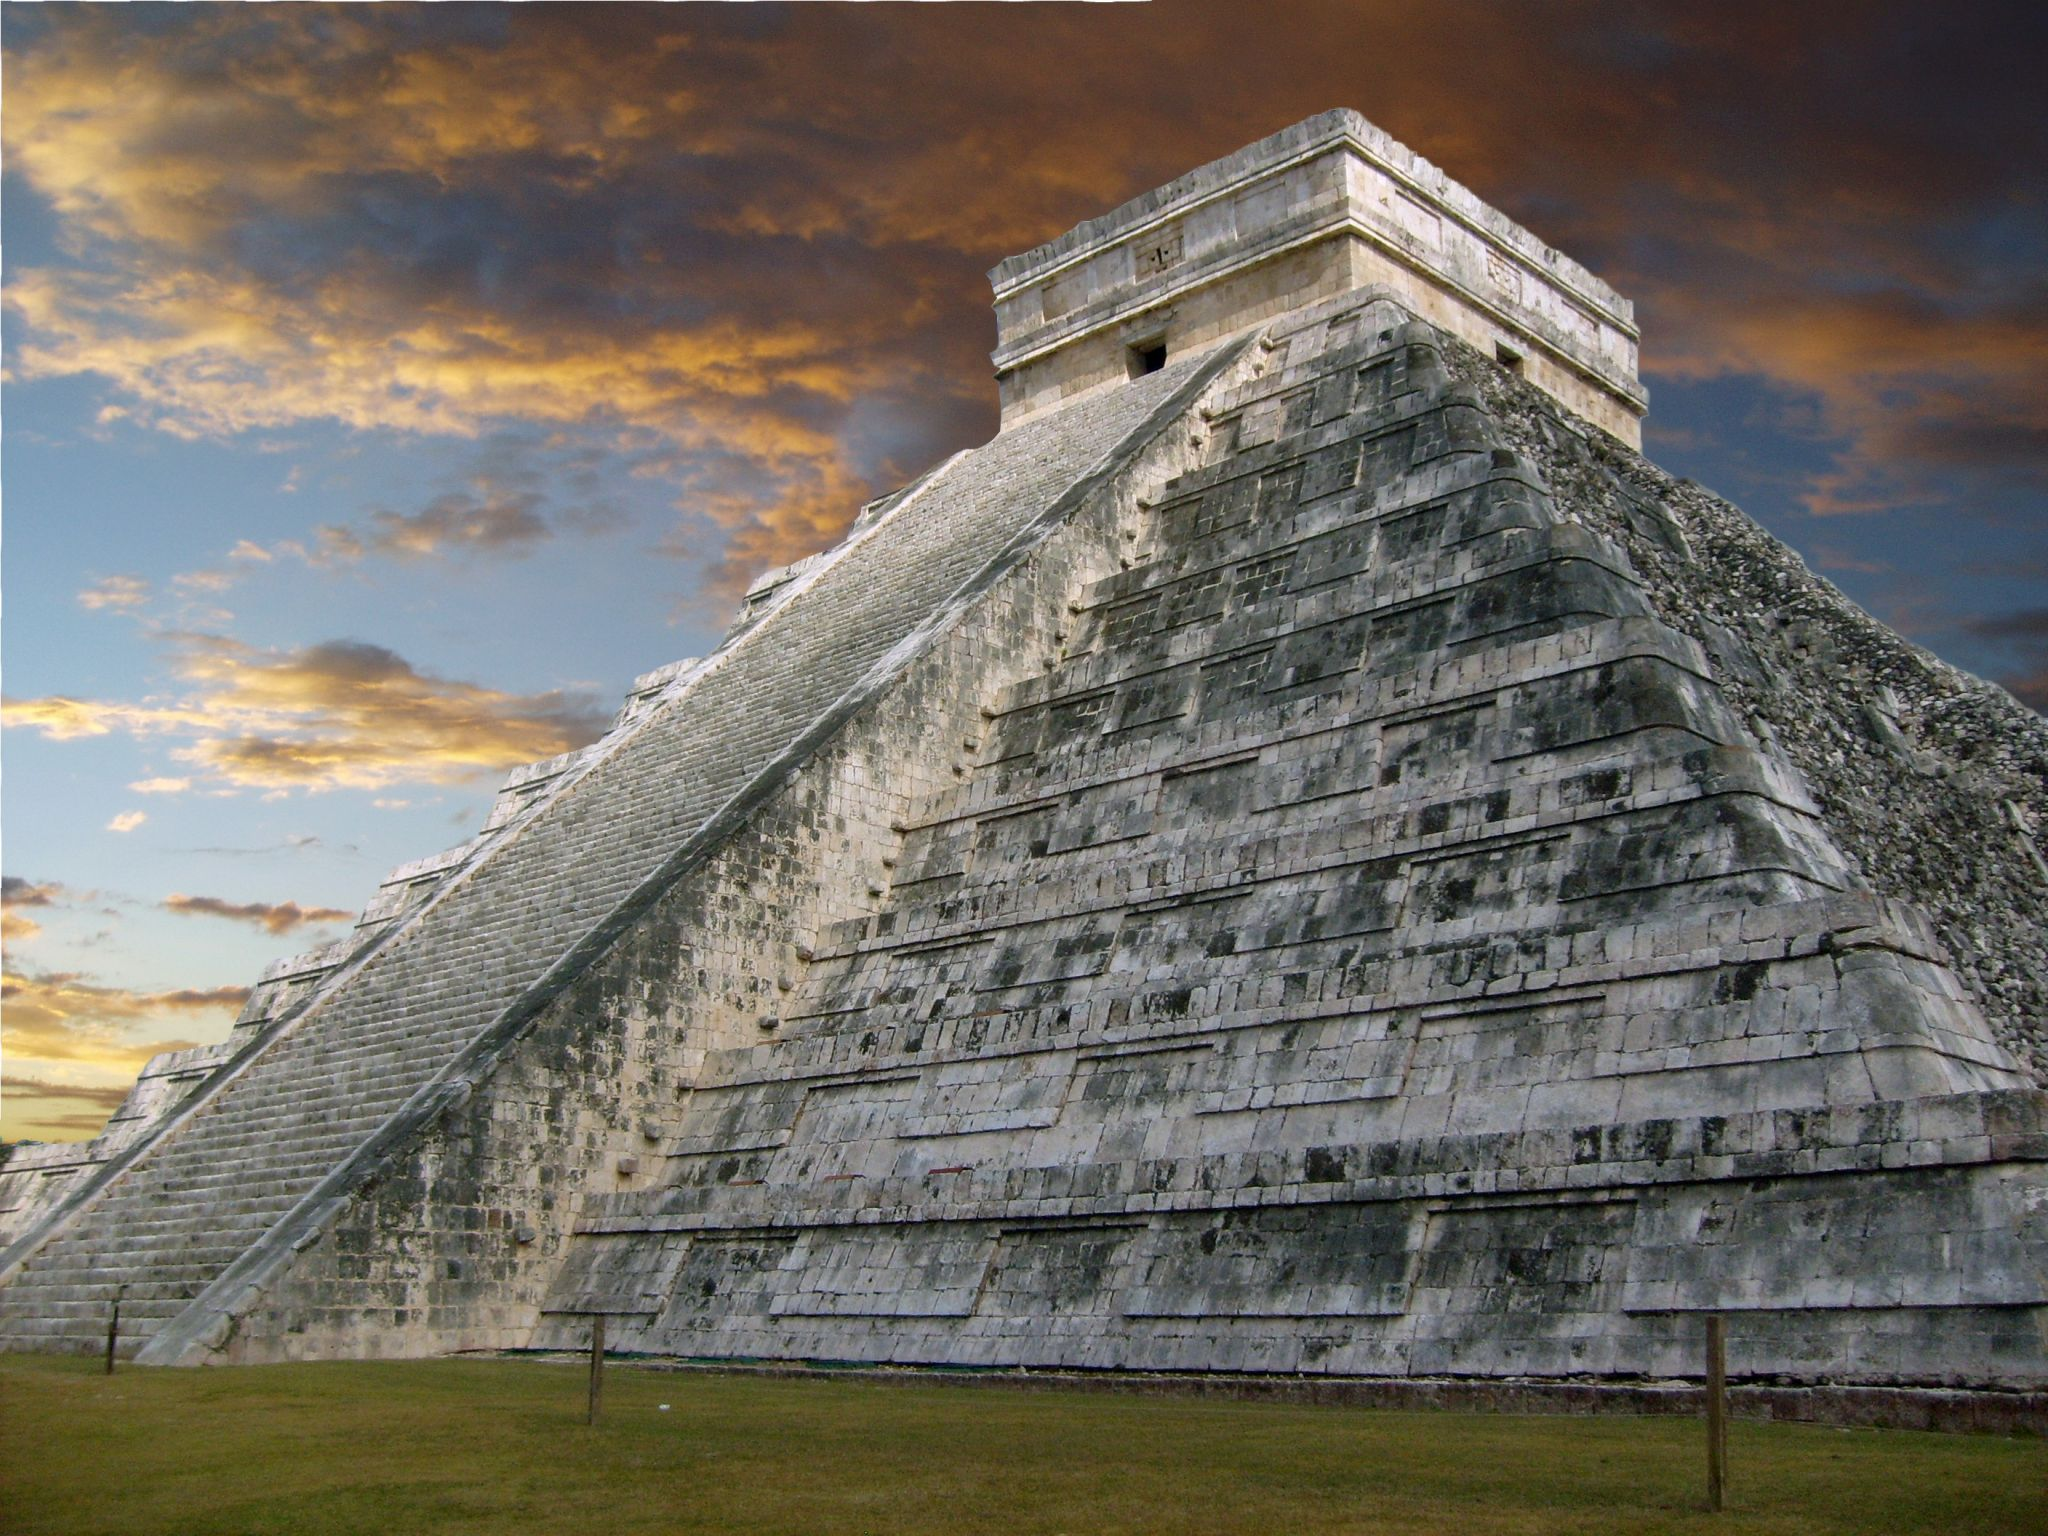 must see places in Mexico - pyramid at Chichen Itza